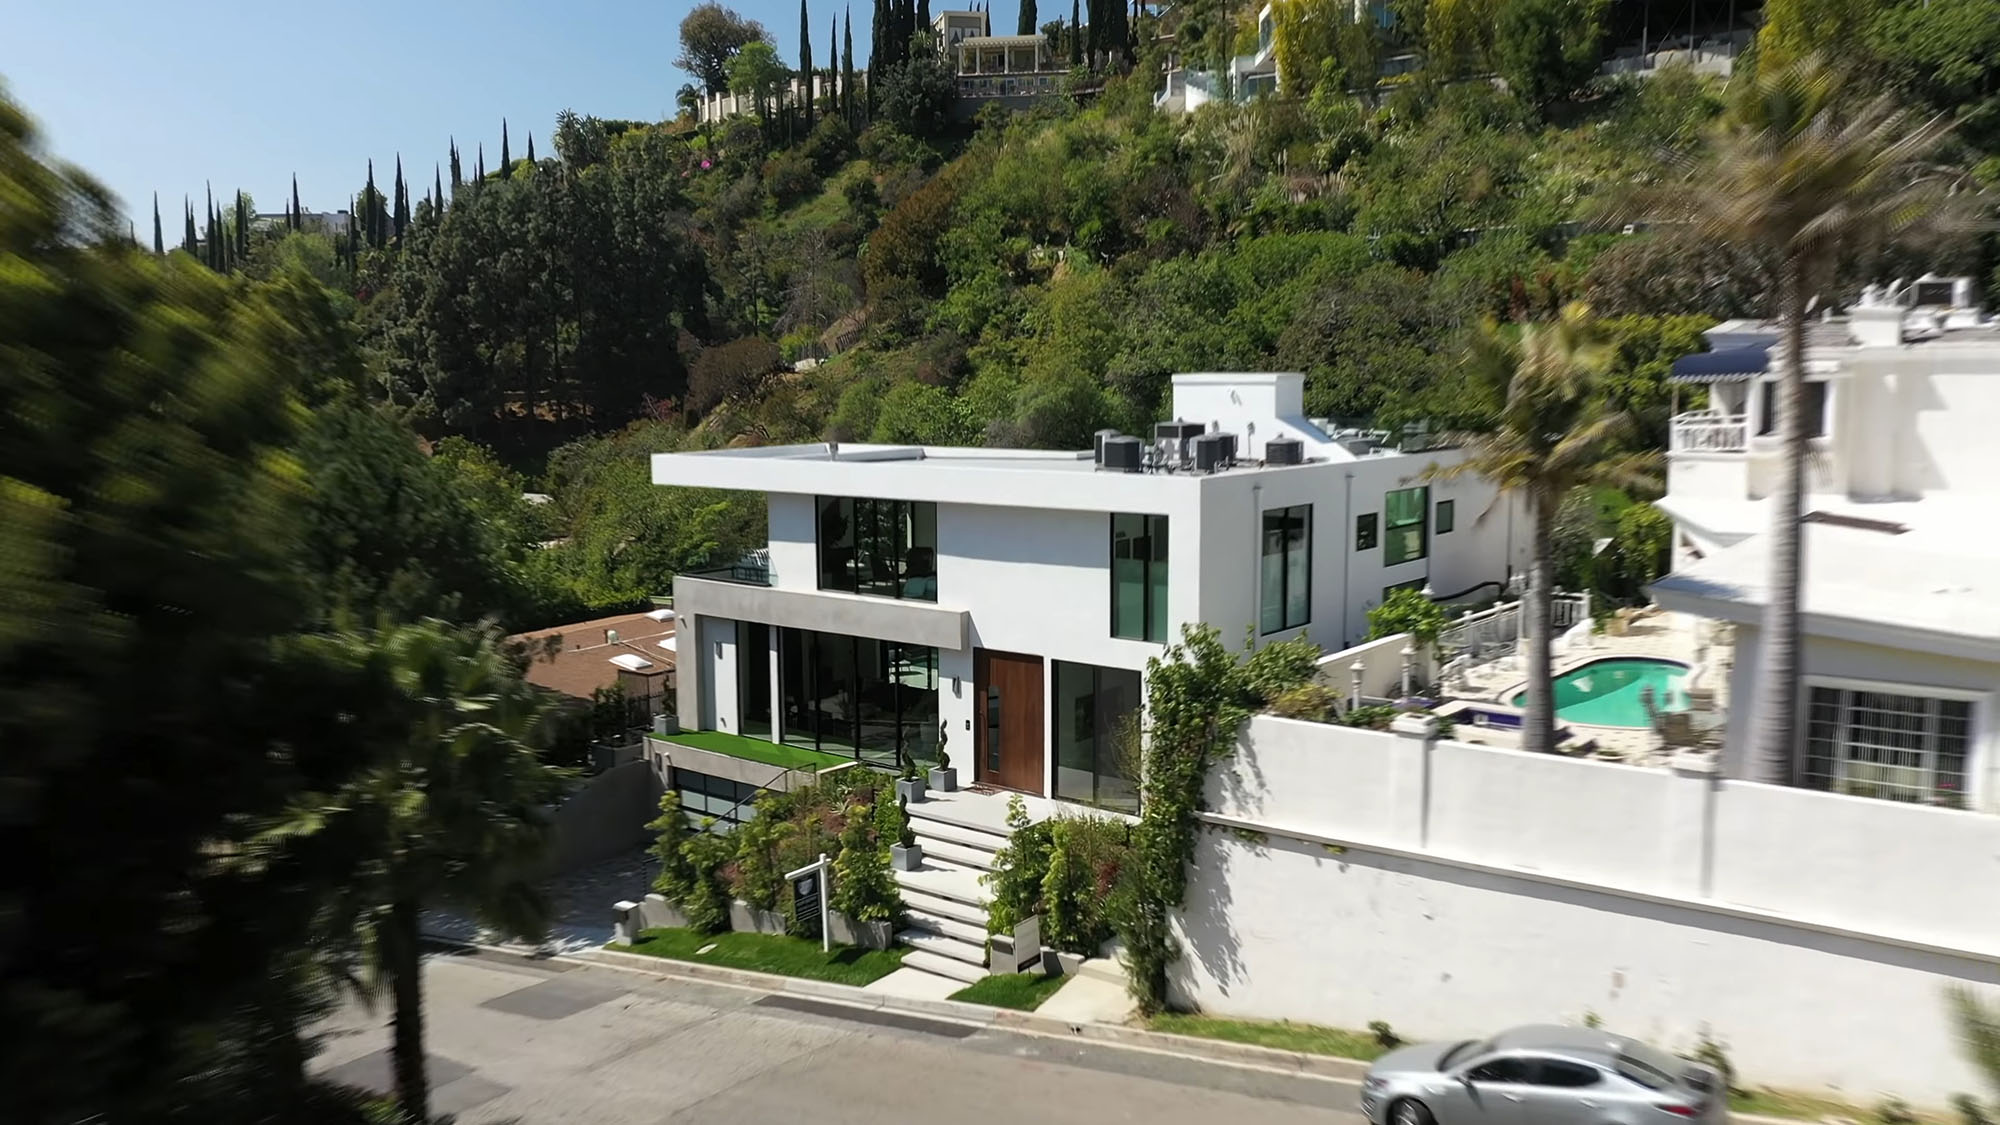 Beautiful white stucco modern home in the California Hills with a flat roof design.